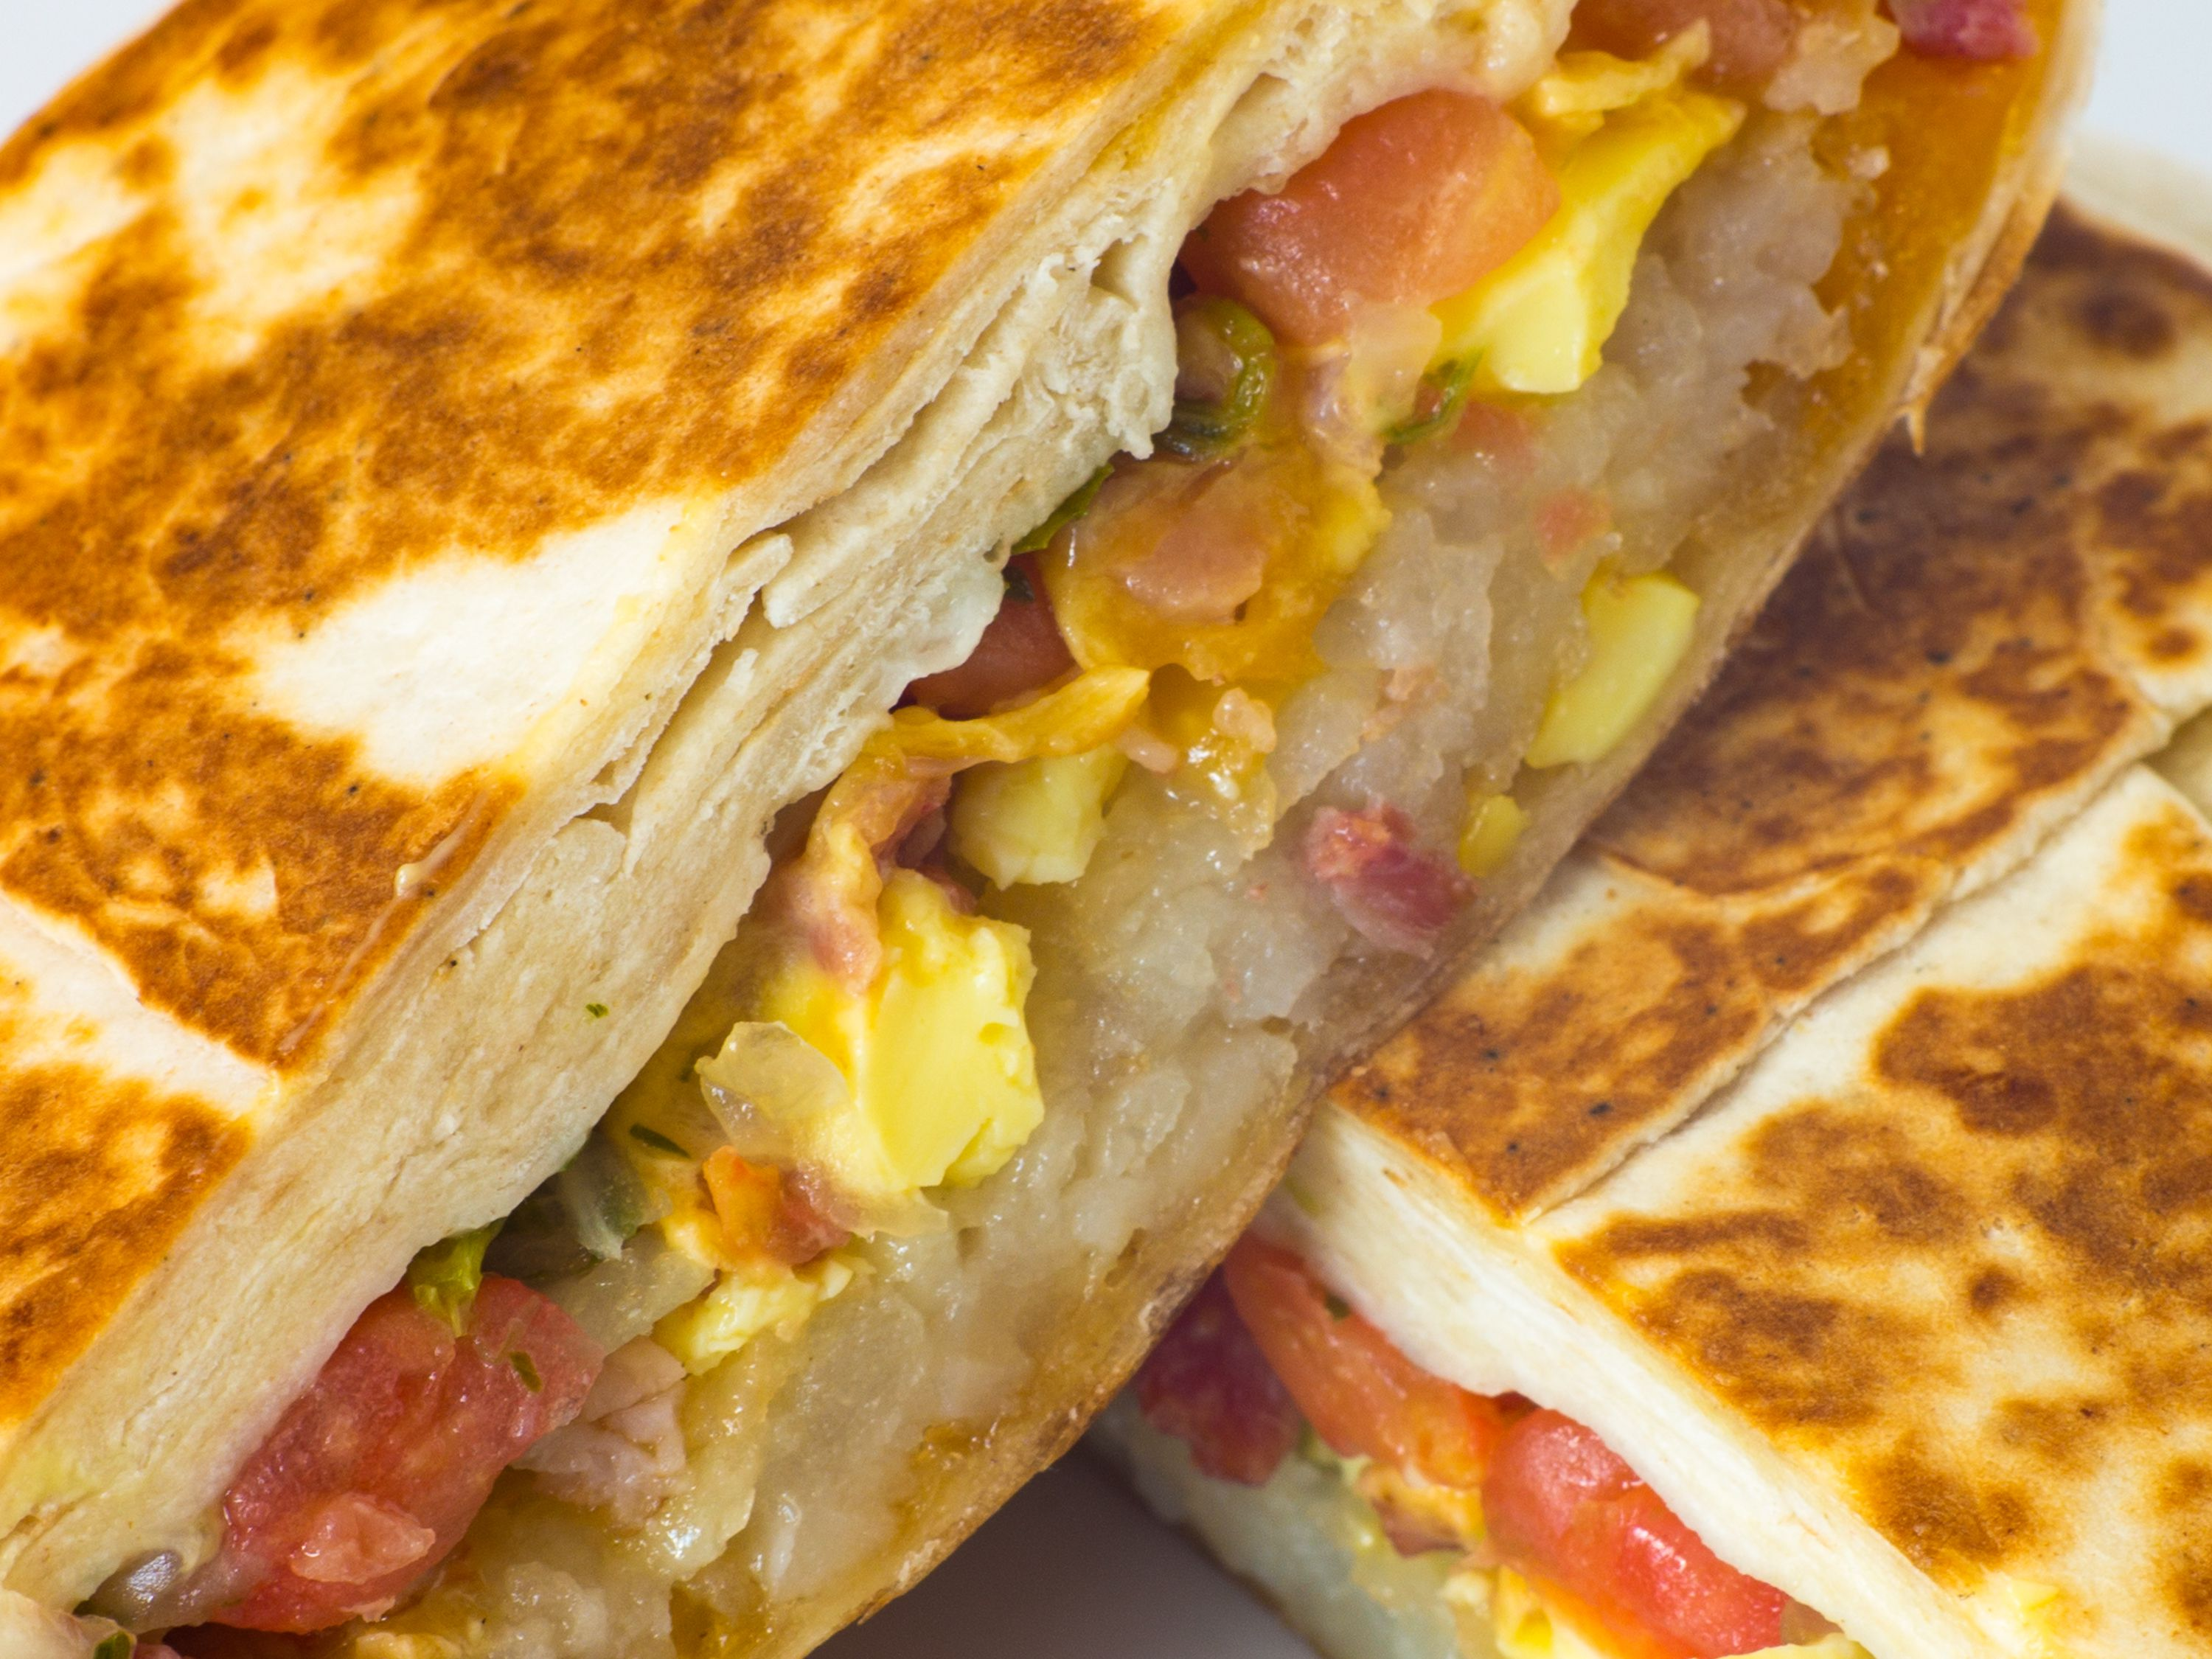 taco bell s breakfast menu ranked eater whole hash browns stuffed into a hexagonal quesadilla eggs cheese and bacon here taco bell is effectively appropriating a low level breakfast